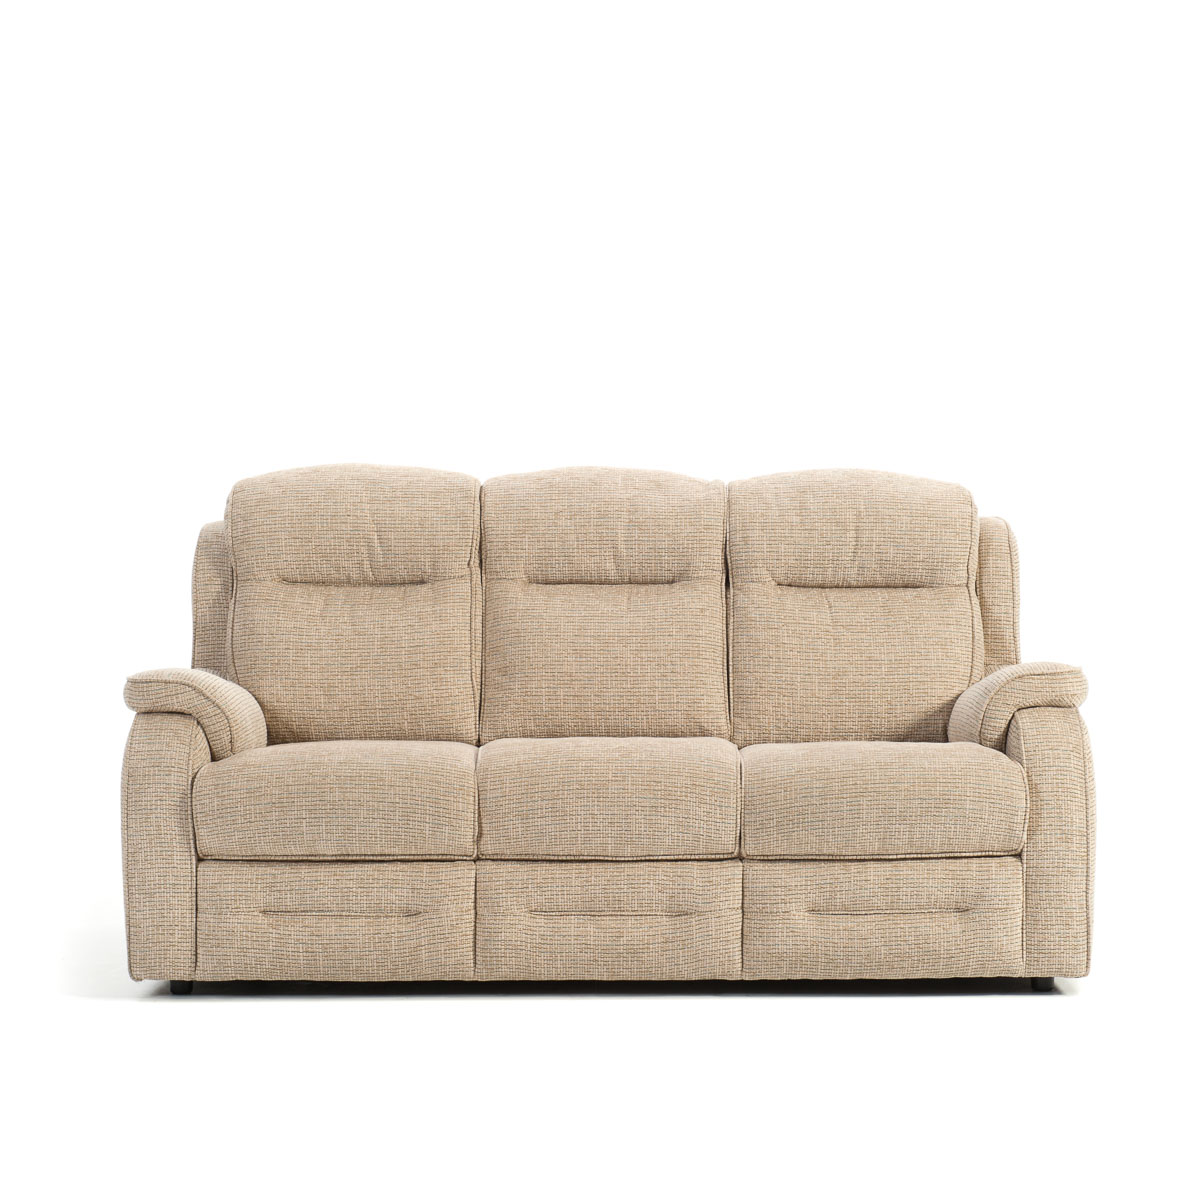 Parker Knoll Boston 3 Seater